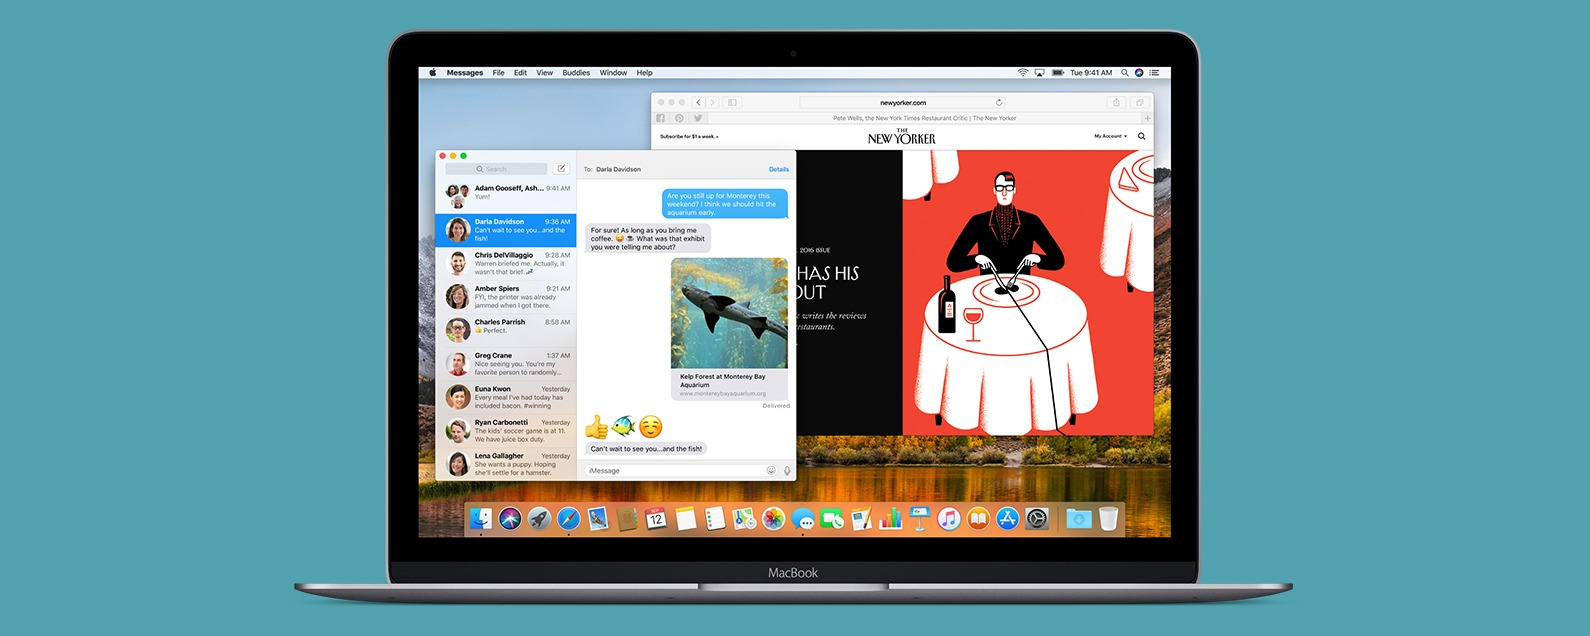 How to Get iMessage on PC (& The Dangerous Methods You Shouldn't Try)